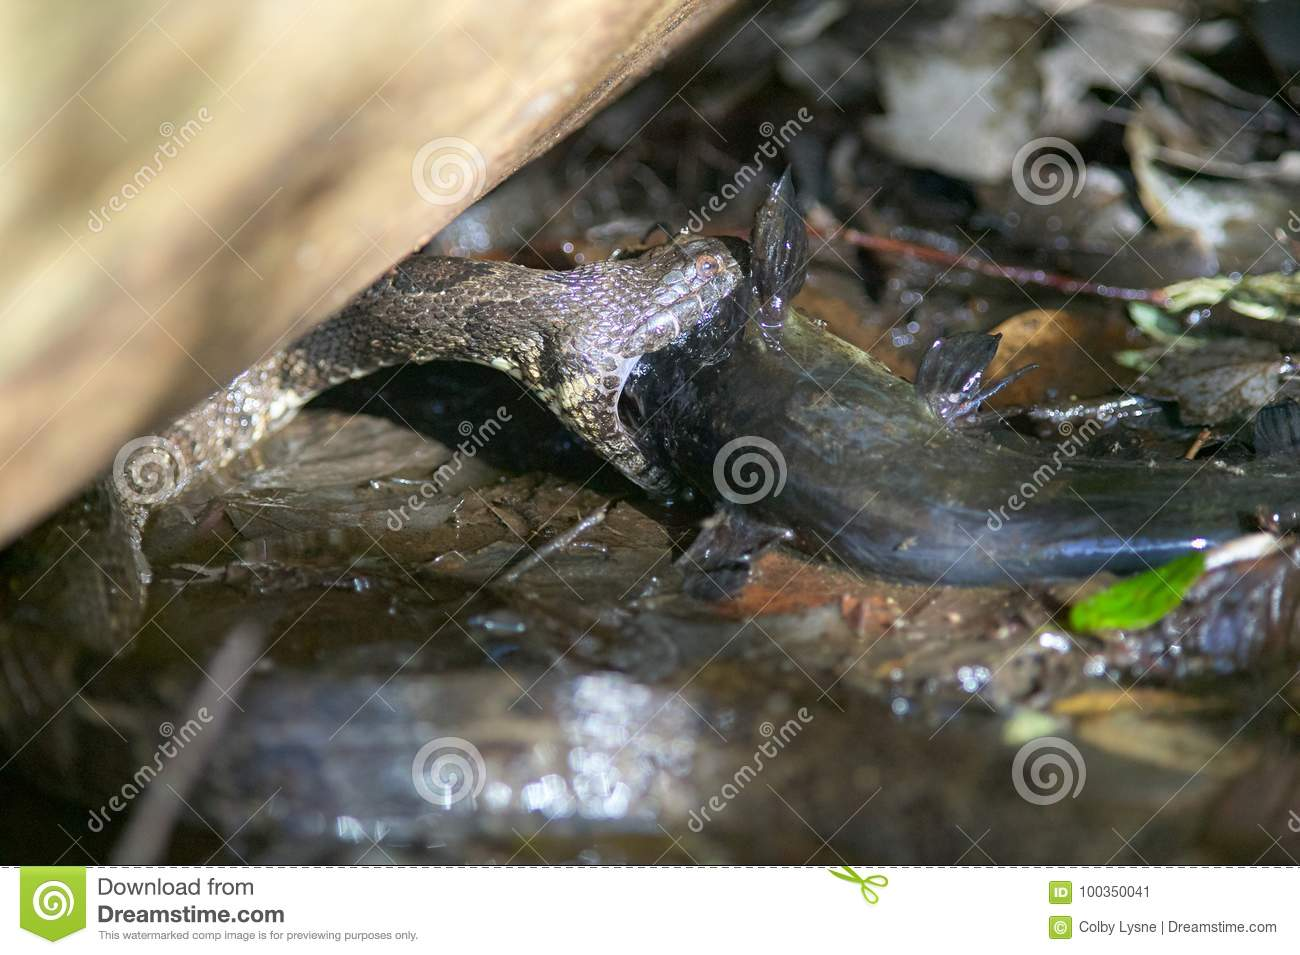 Water Moccasin Eating Fish In Swamp Stock Image Image Of Habitat